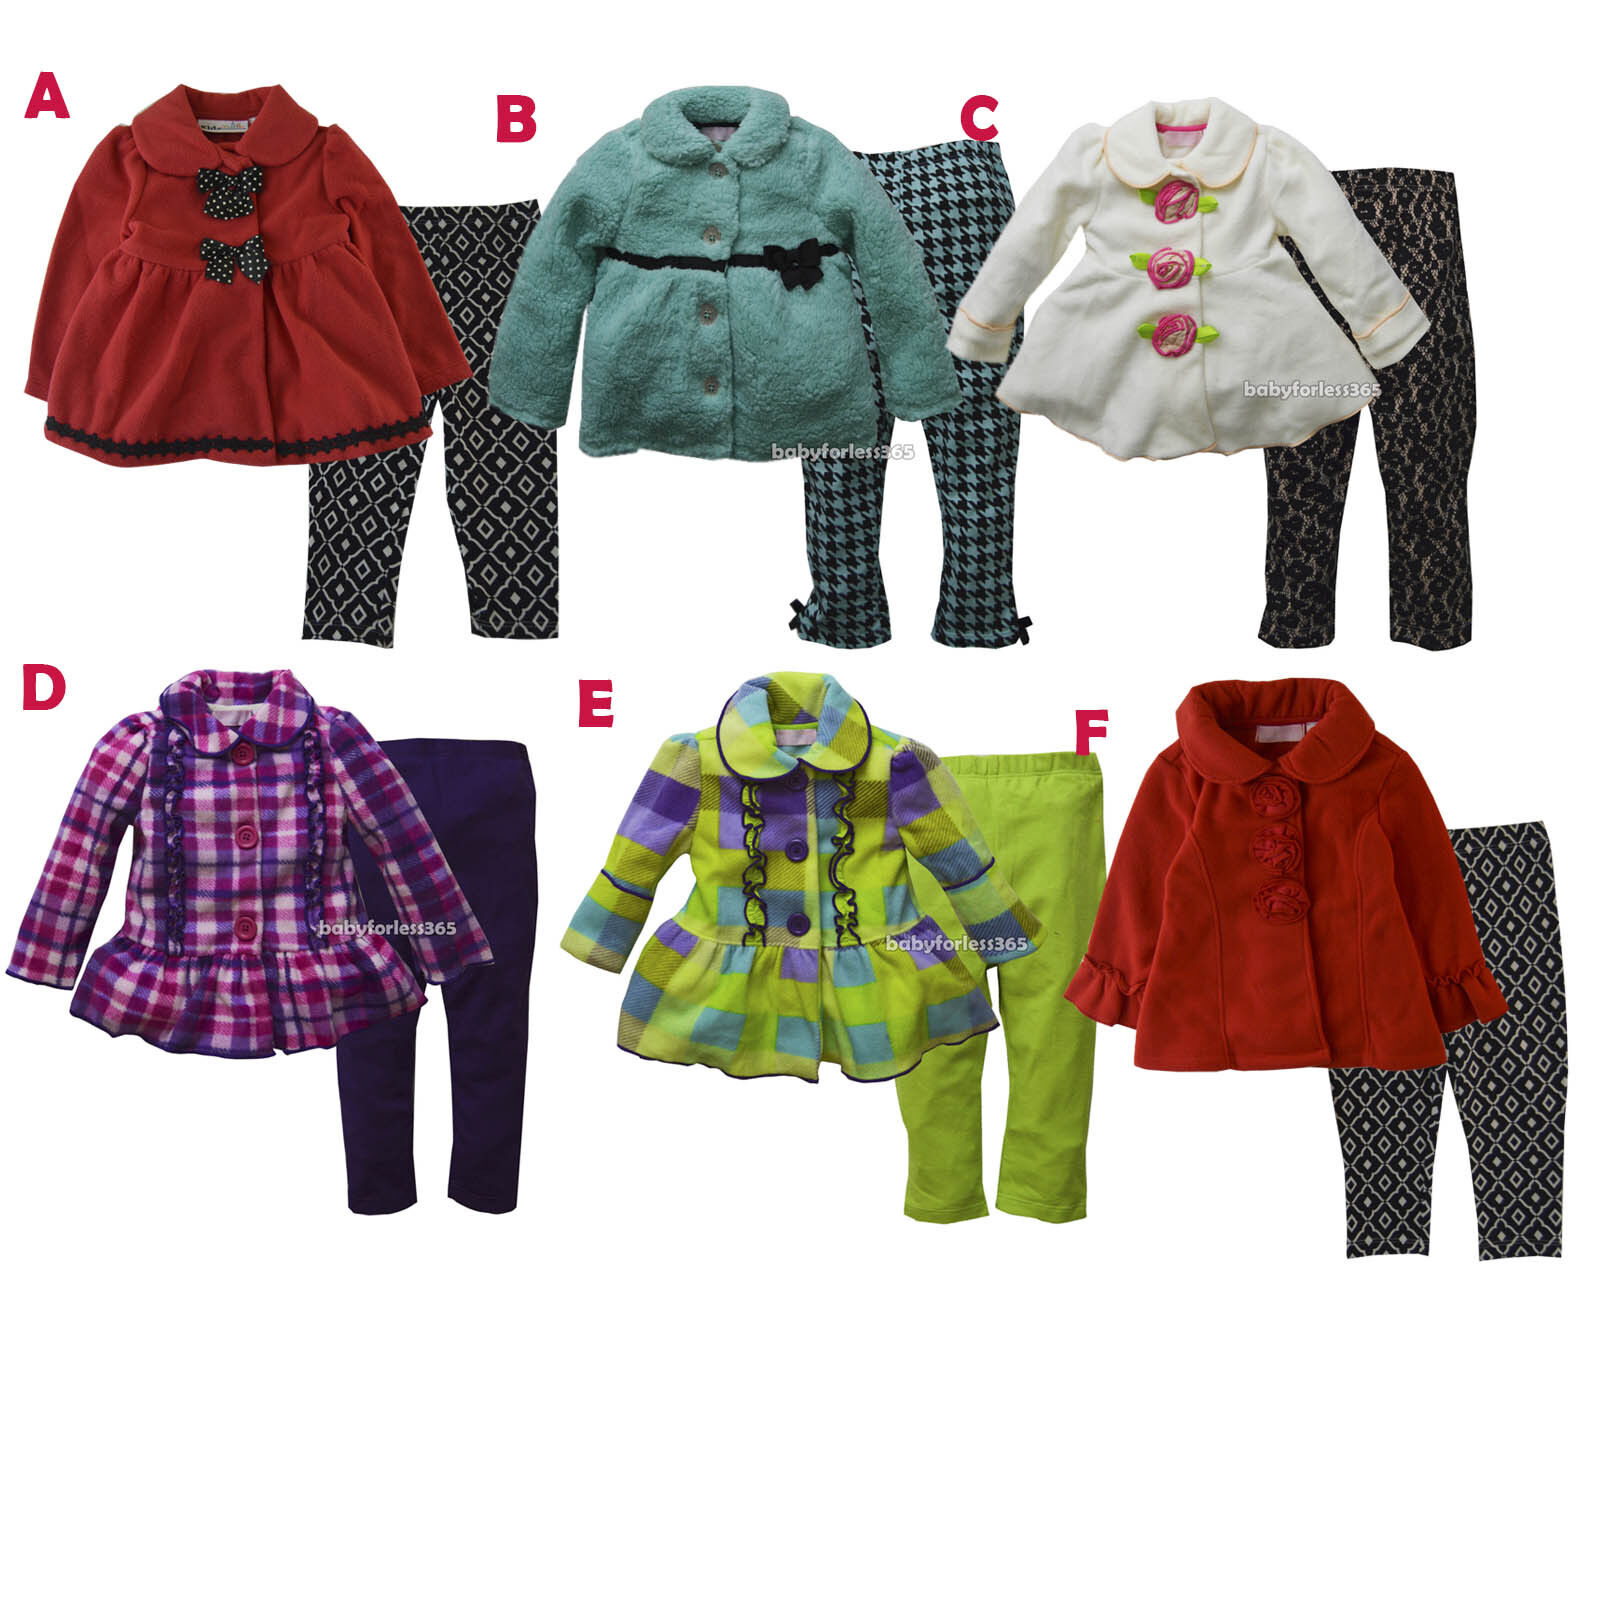 47e47dea32a5b Details about Kid Headquarters Baby Girl Winter Coat Jacket Legging Size 12  18 24 months 3T 4T